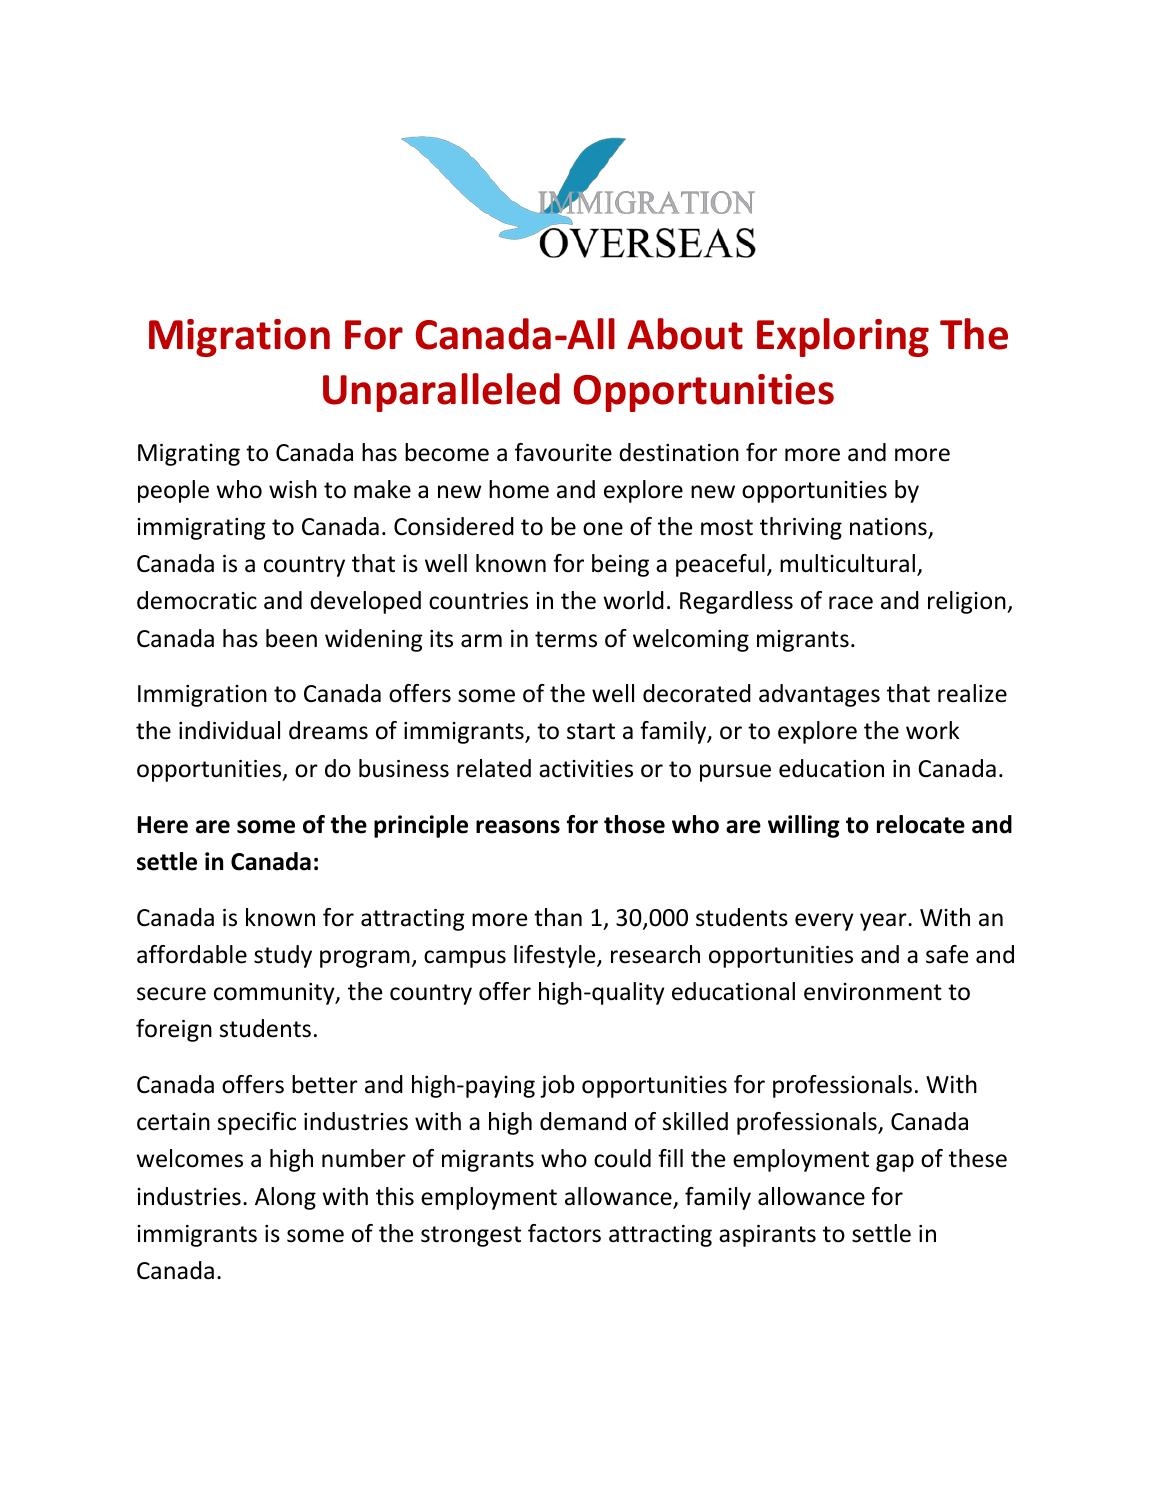 Explore Exceptional Opportunities While Migration To Canada